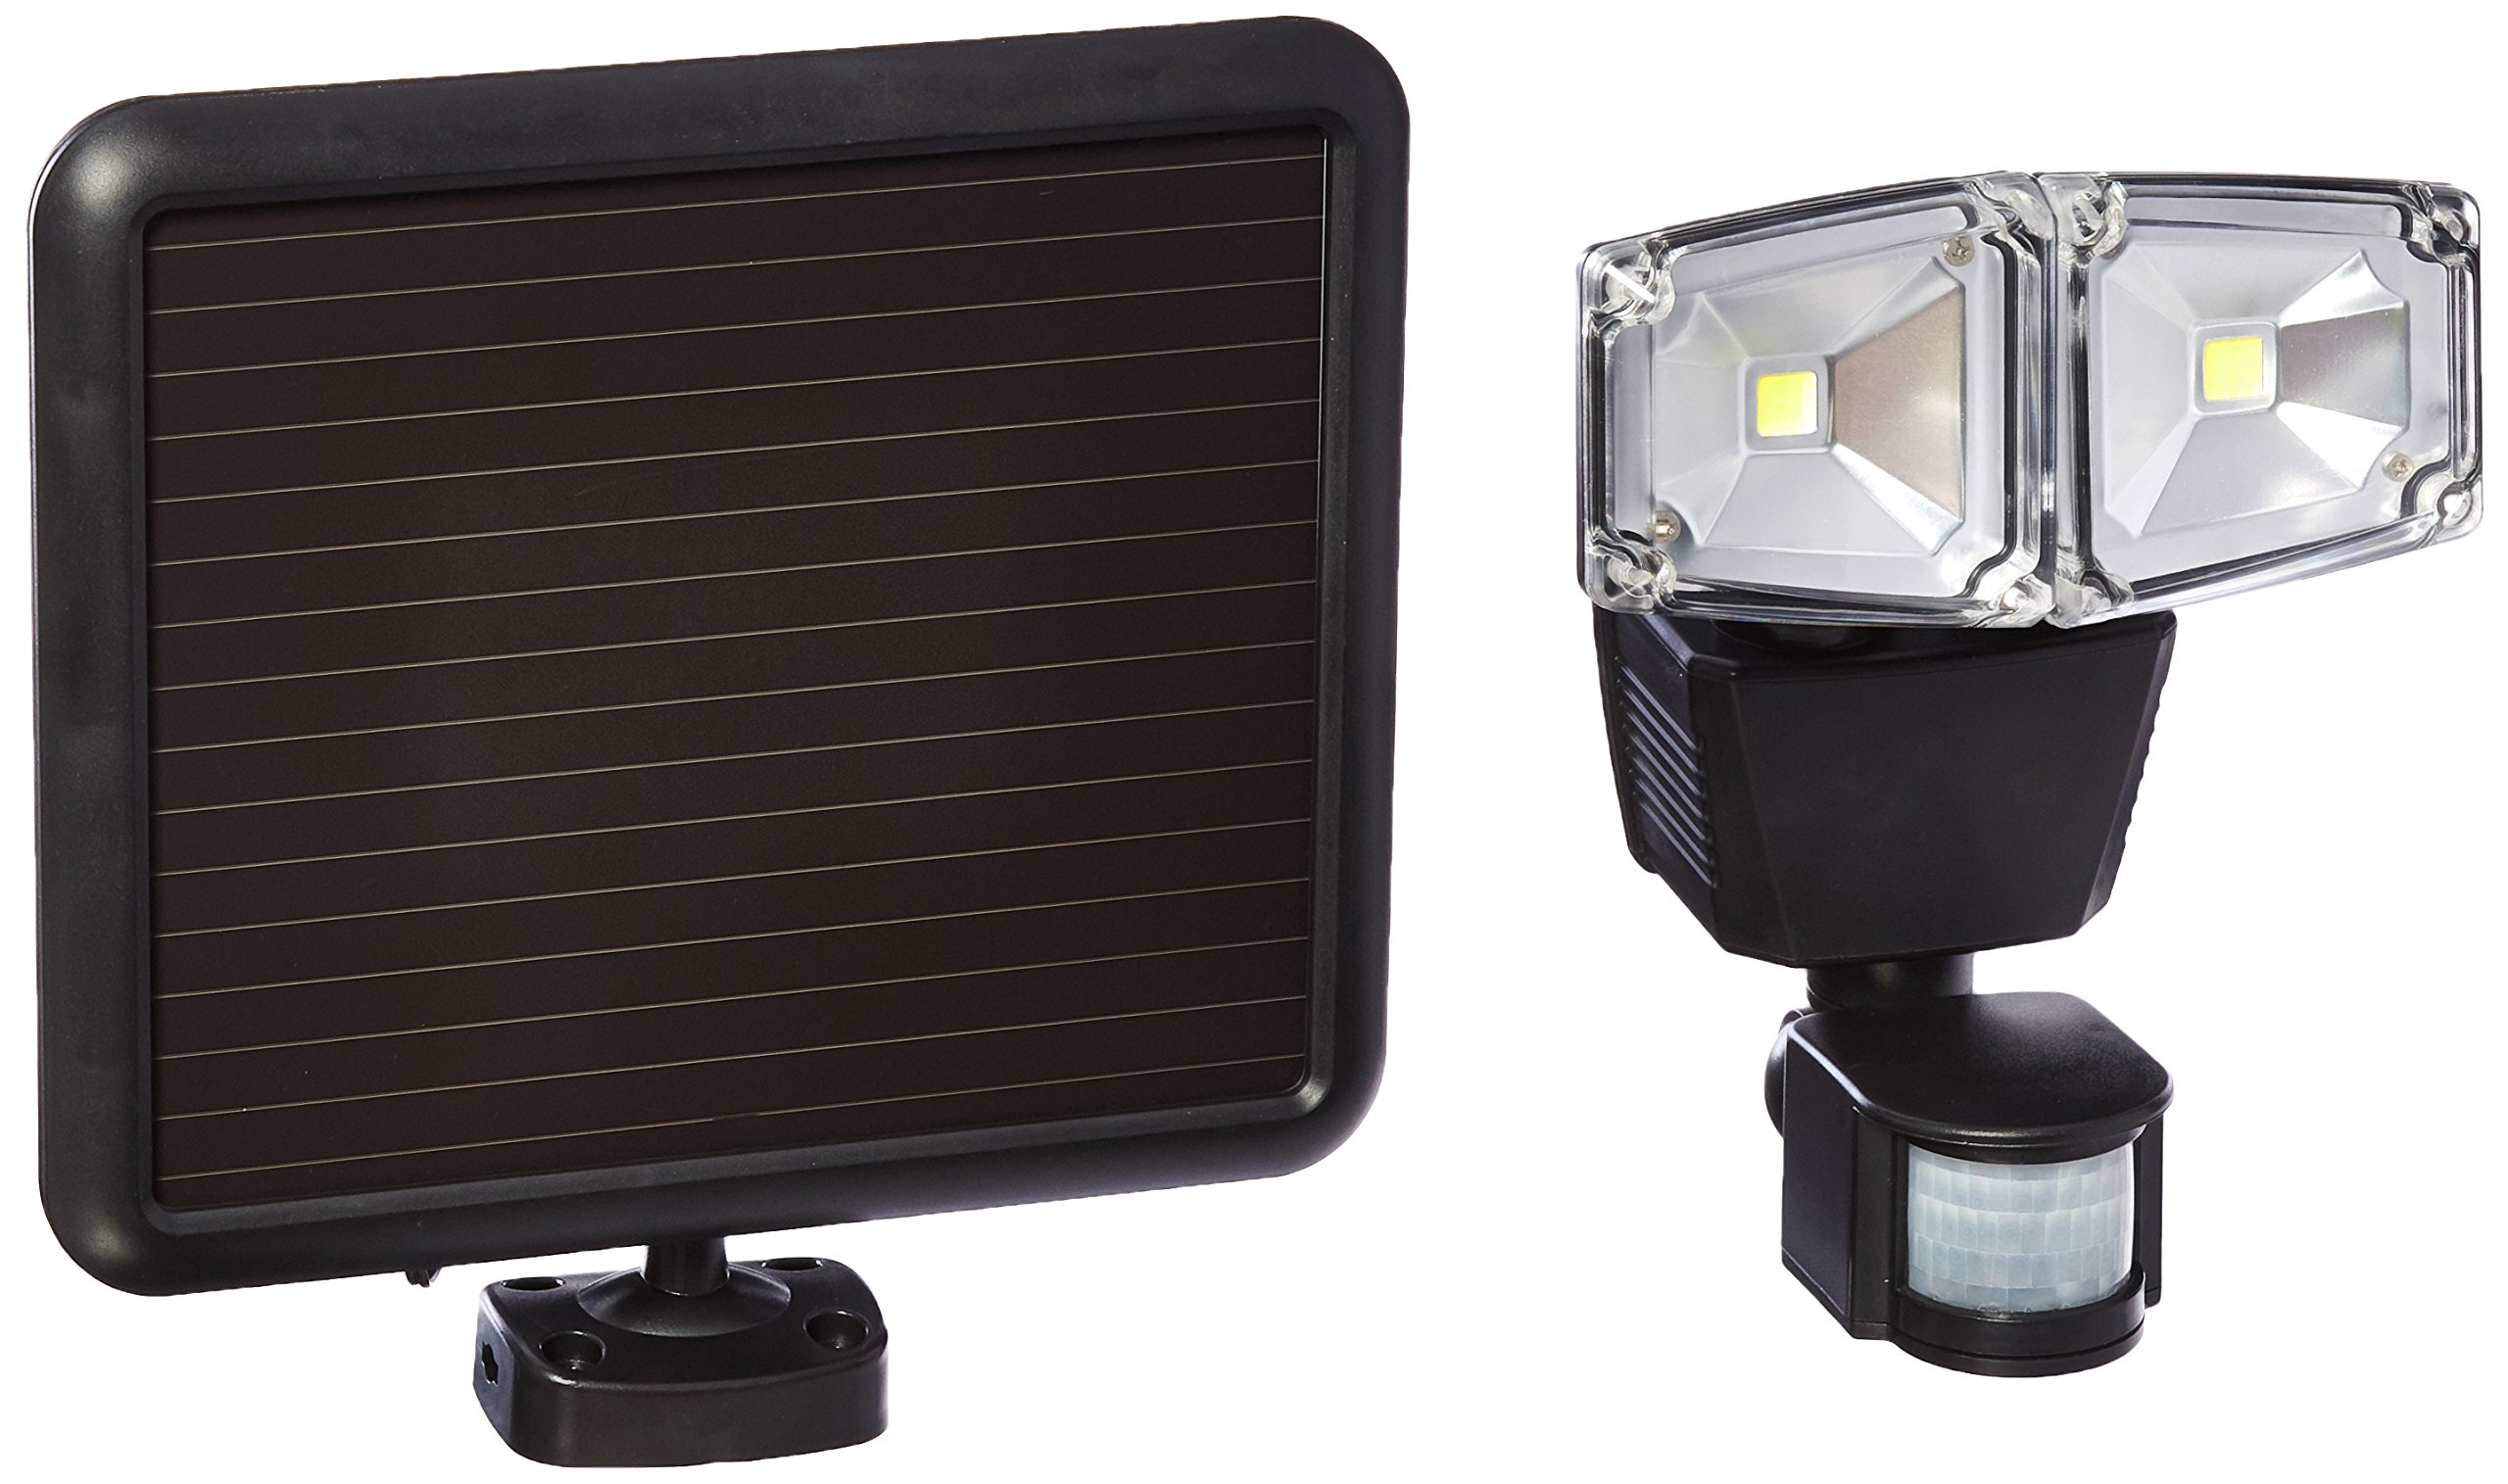 160-Degree Outdoor Black Dual Lamp Solar Motion Sensing Security Light with Advance LED Technology